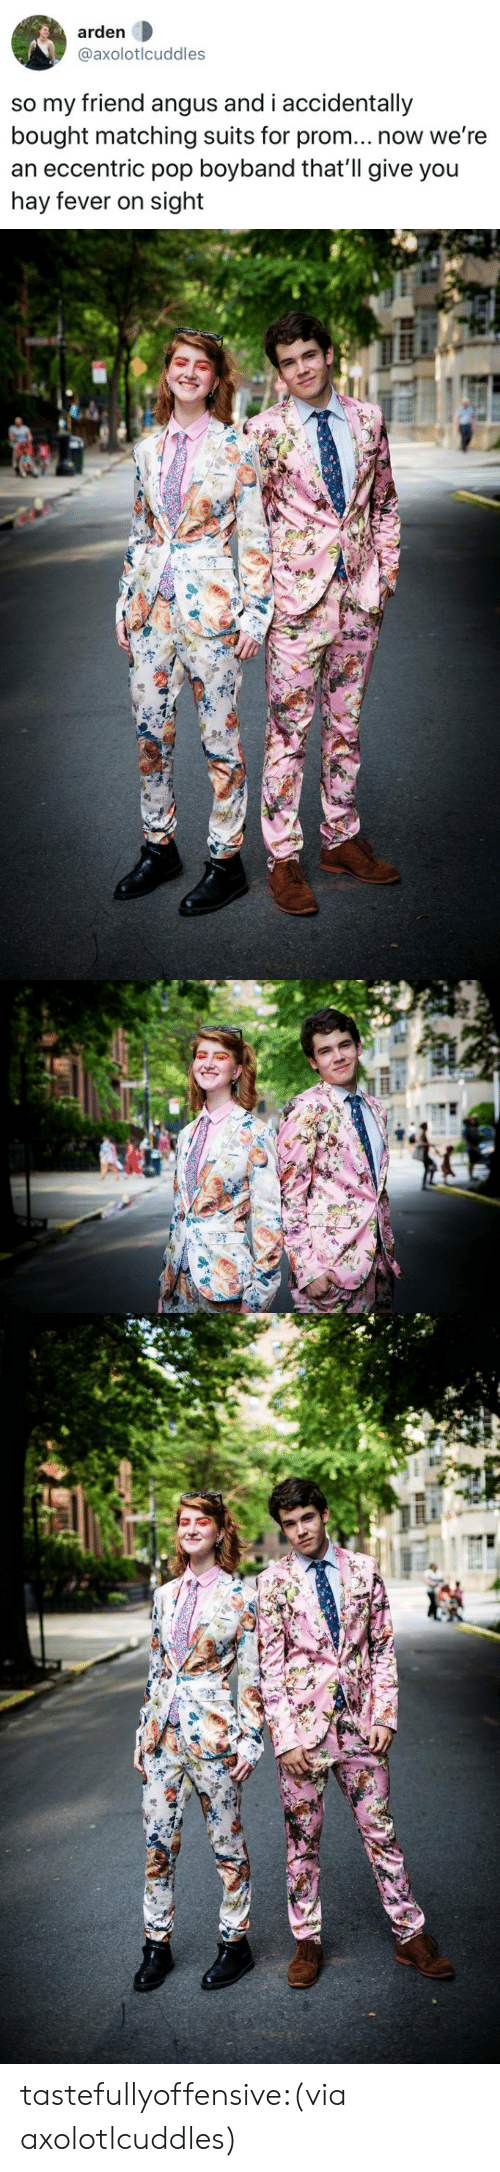 angus: arden  @axolotlcuddles  so my friend angus and i accidentally  bought matching suits for prom... now we're  an eccentric pop boyband that'll give you  hay fever on sight tastefullyoffensive:(via axolotlcuddles)